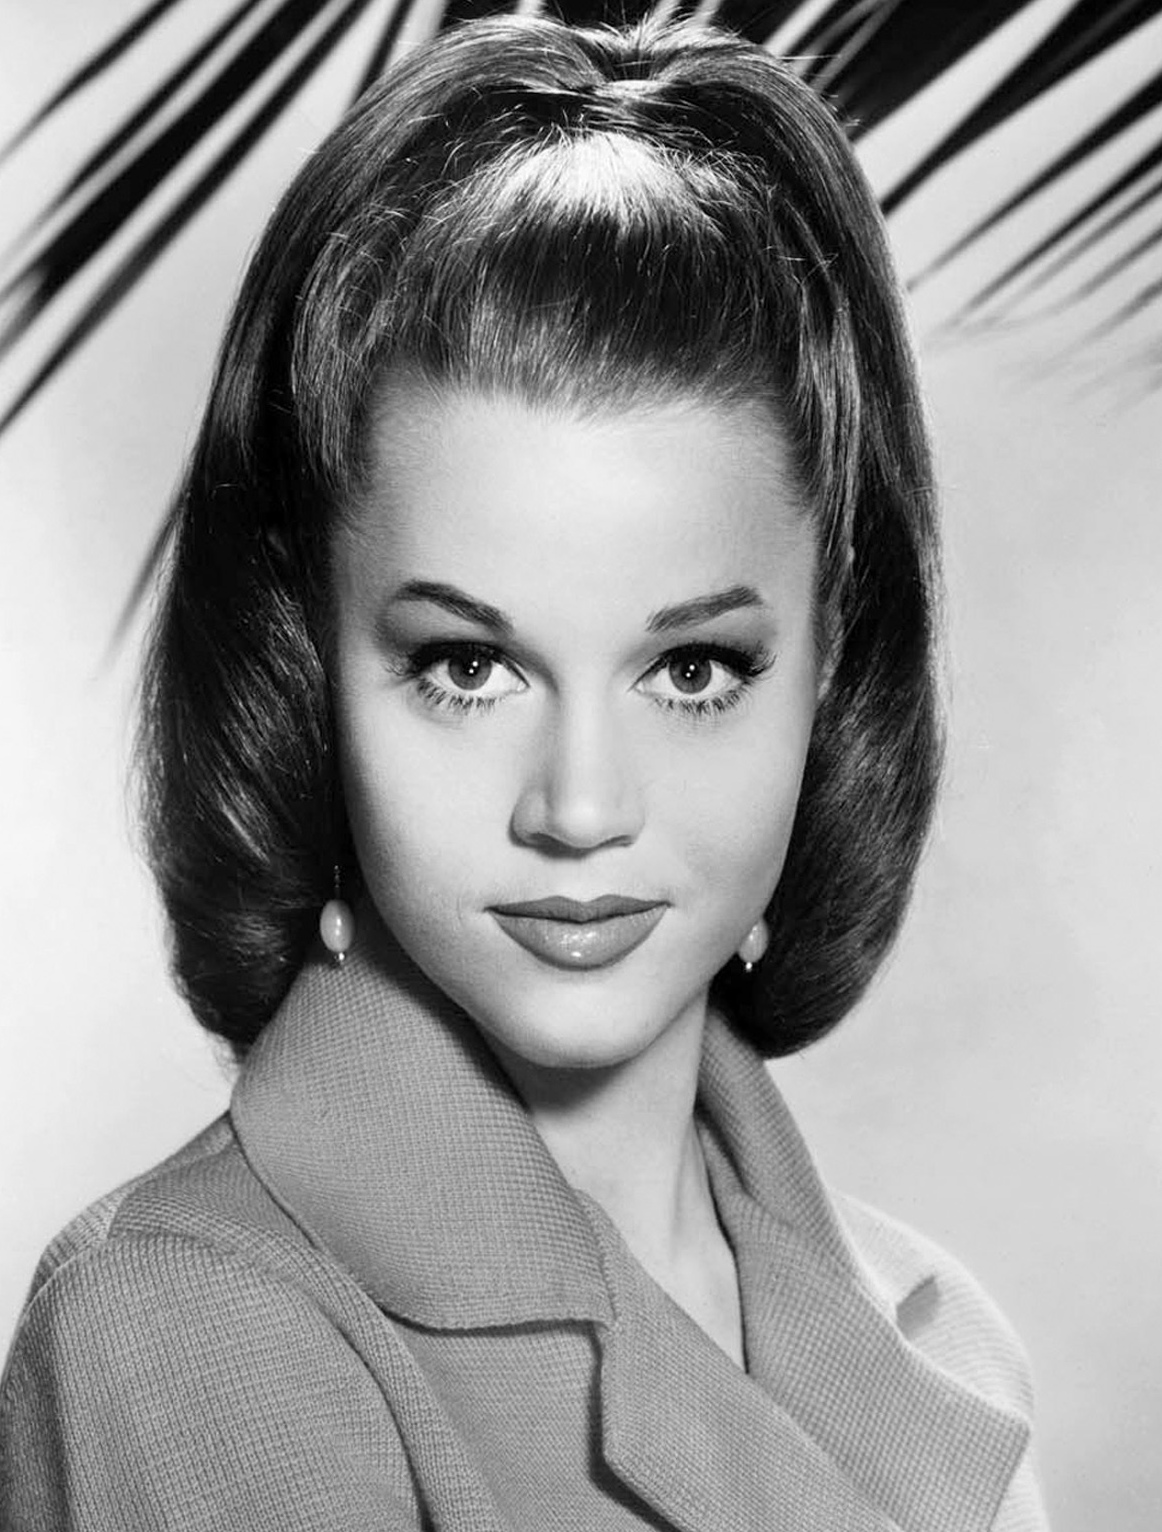 Young Celebrity Photo Gallery: Jane Fonda As Young Woman